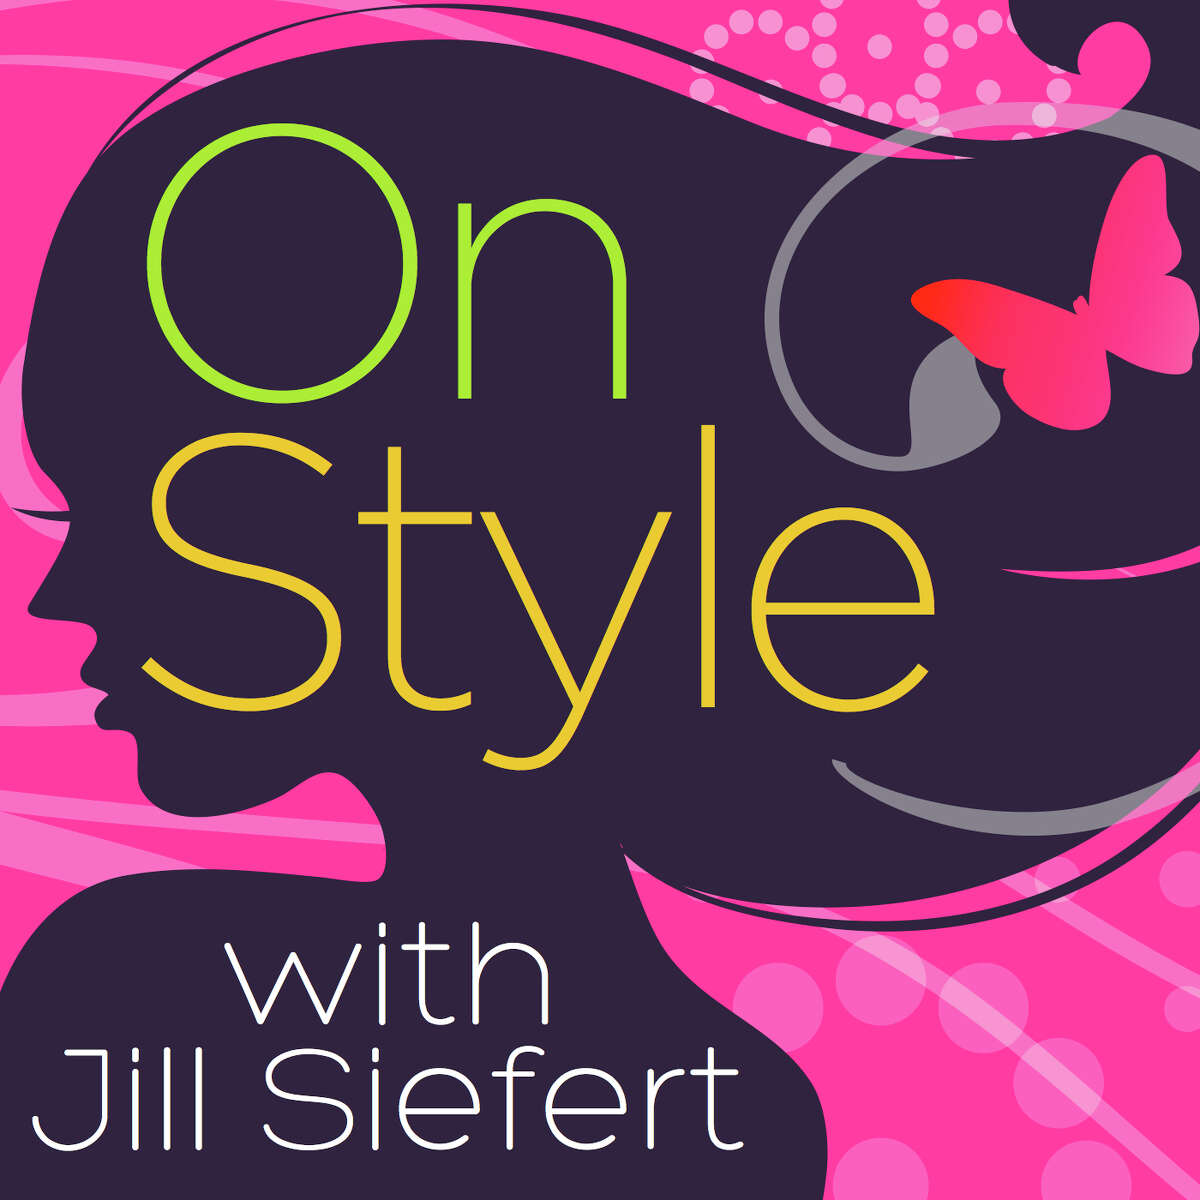 Hosted by veteran stylist and fashion instructor Siefert, this interview-style podcast features conversations with designers, entrepreneurs and fashion industry insiders. www.jillsiefert.com